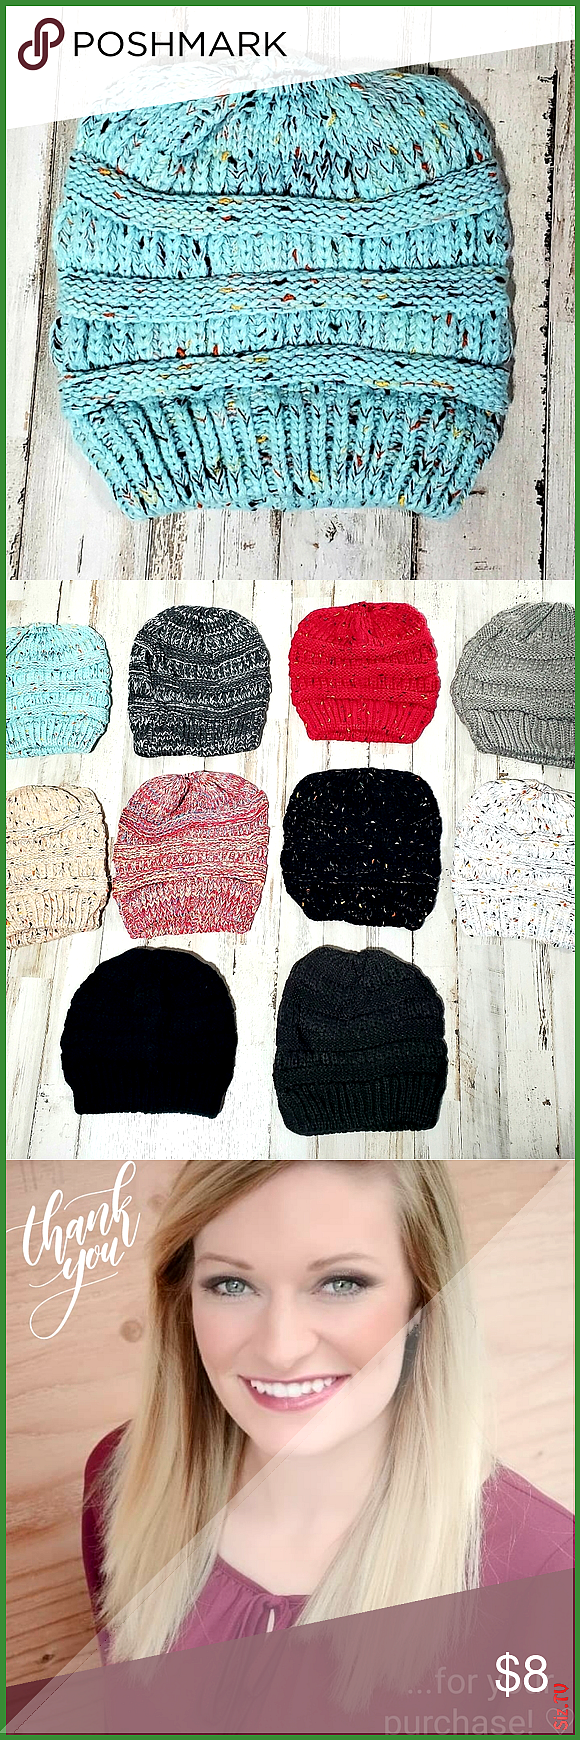 3 15 Messy Bun Beanie Choose any 3 colors for 15 New good condition Elastic stretchy opening on top for bun ponytail Accessories Hair Accessorie  3 15 Messy Bun Beanie Choose any 3 colors for 15 New good condition Elastic stretchy opening on top for bun ponytail nbsp  hellip   #accessorie #Accessories #Beanie #Bun #BunPonytail #Choose #colors #Condition #curly Messy Bun #ELASTIC